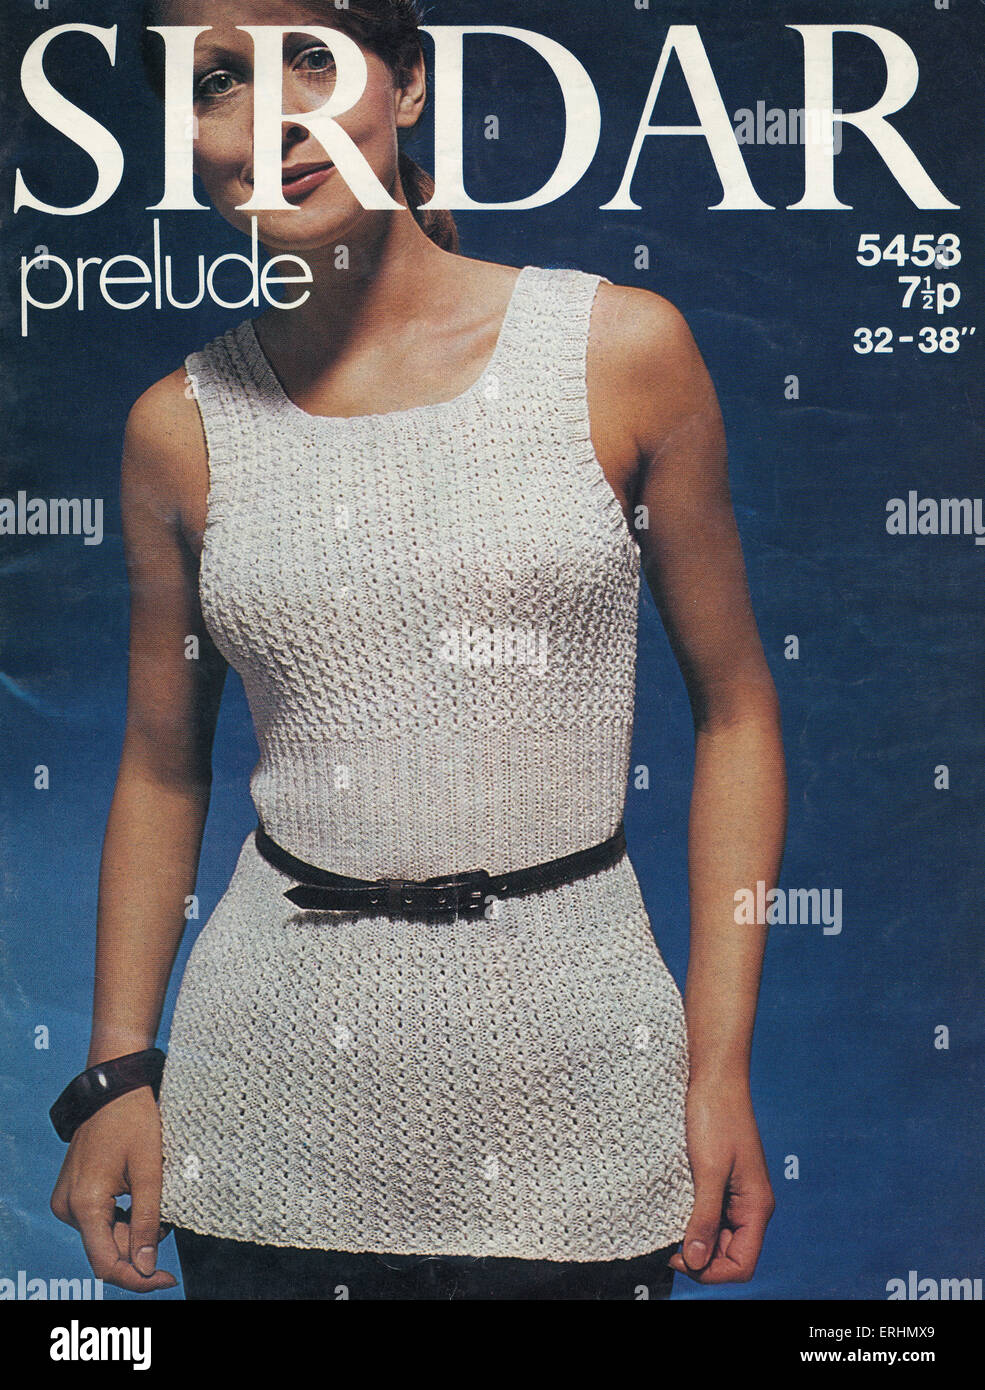 Sirdar Prelude Knitting Pattern Woman Wearing A Knitted Sweater